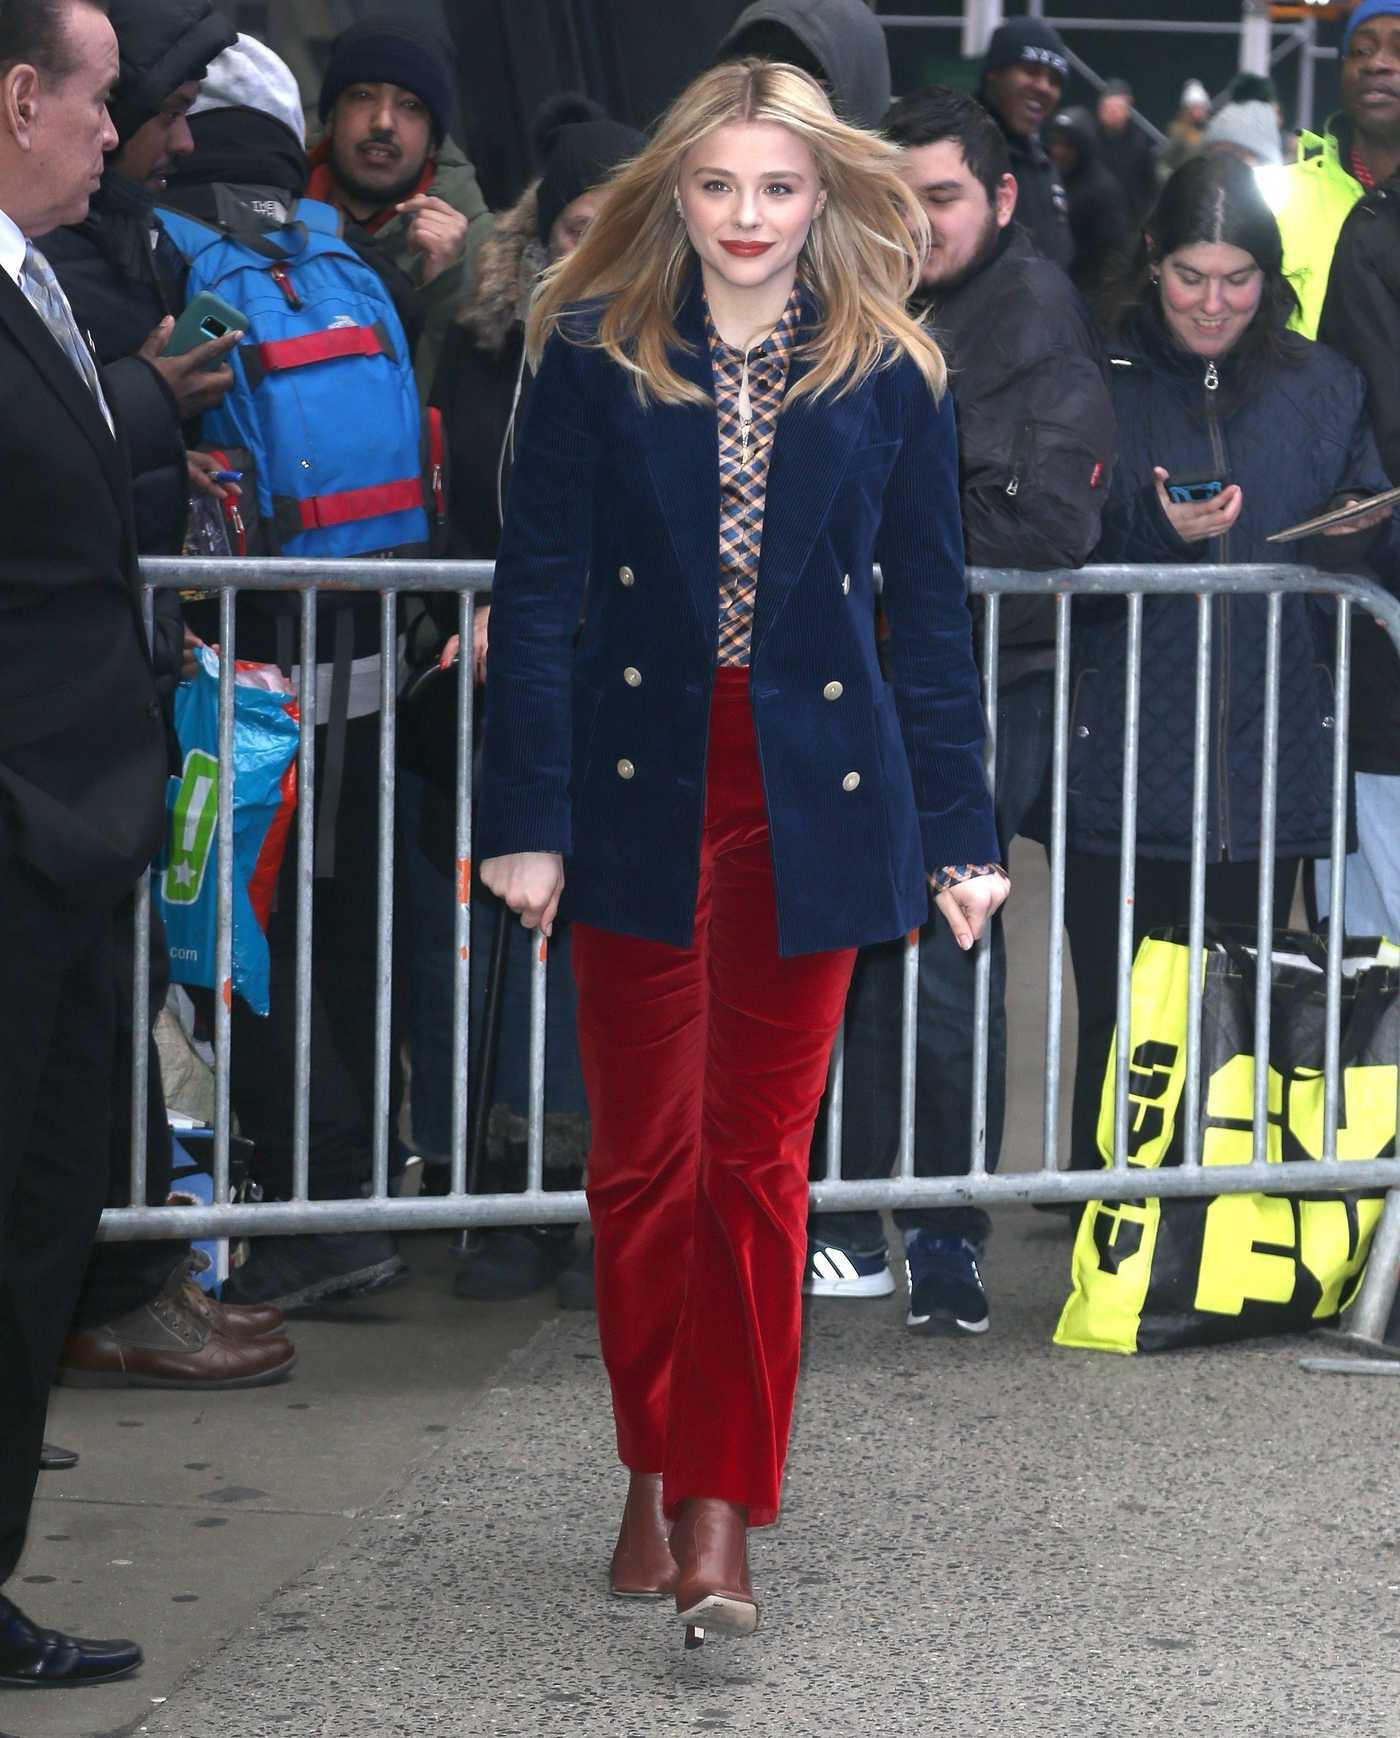 Chloe Moretz in a Red Pants Arrives at Good Morning America in NYC 02/20/2019